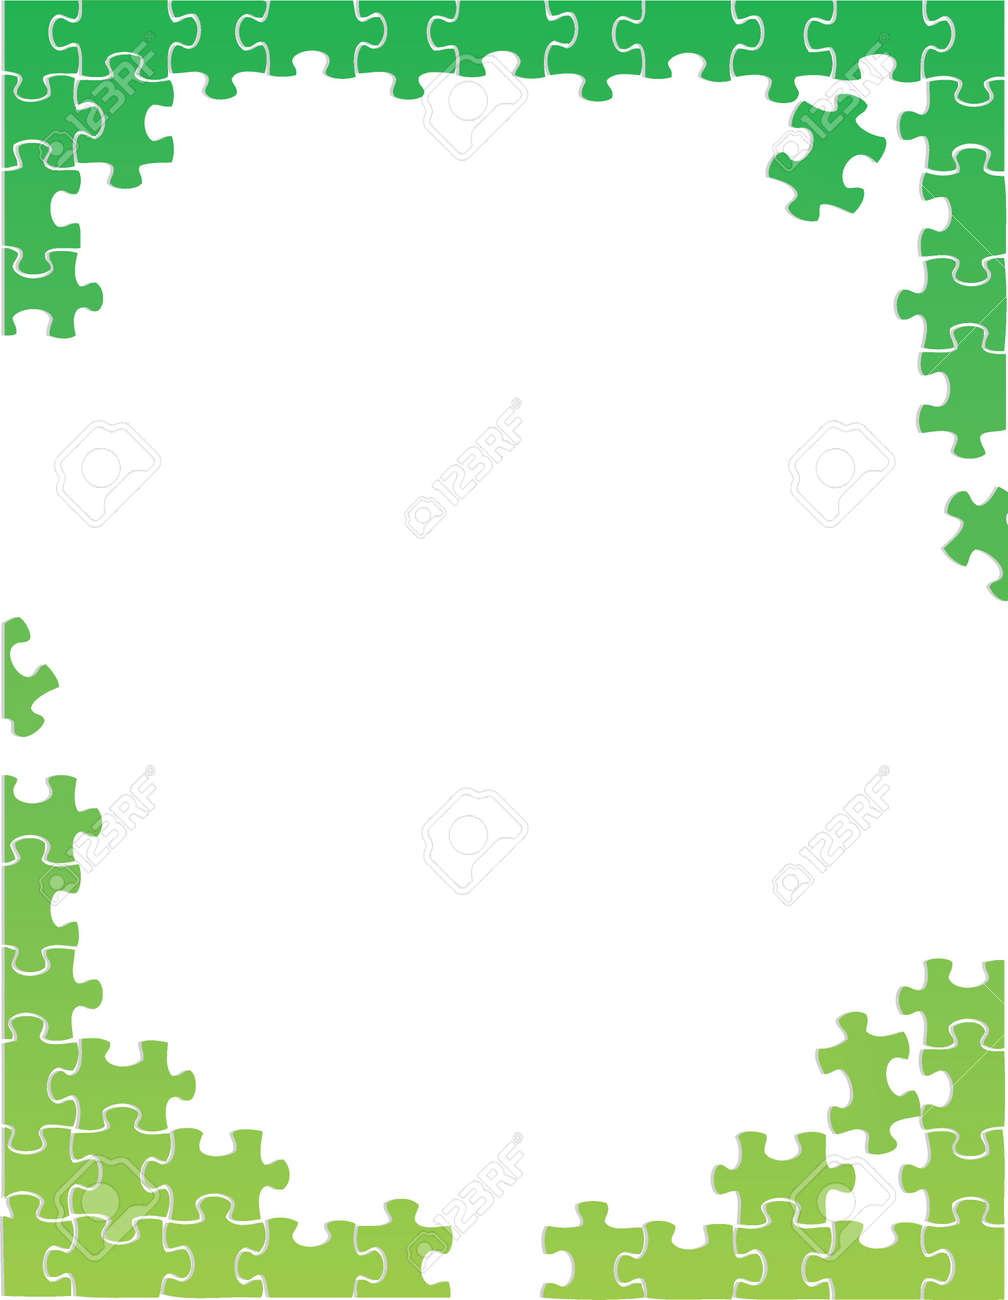 green puzzle pieces border template illustration design over a white background stock vector 28094716